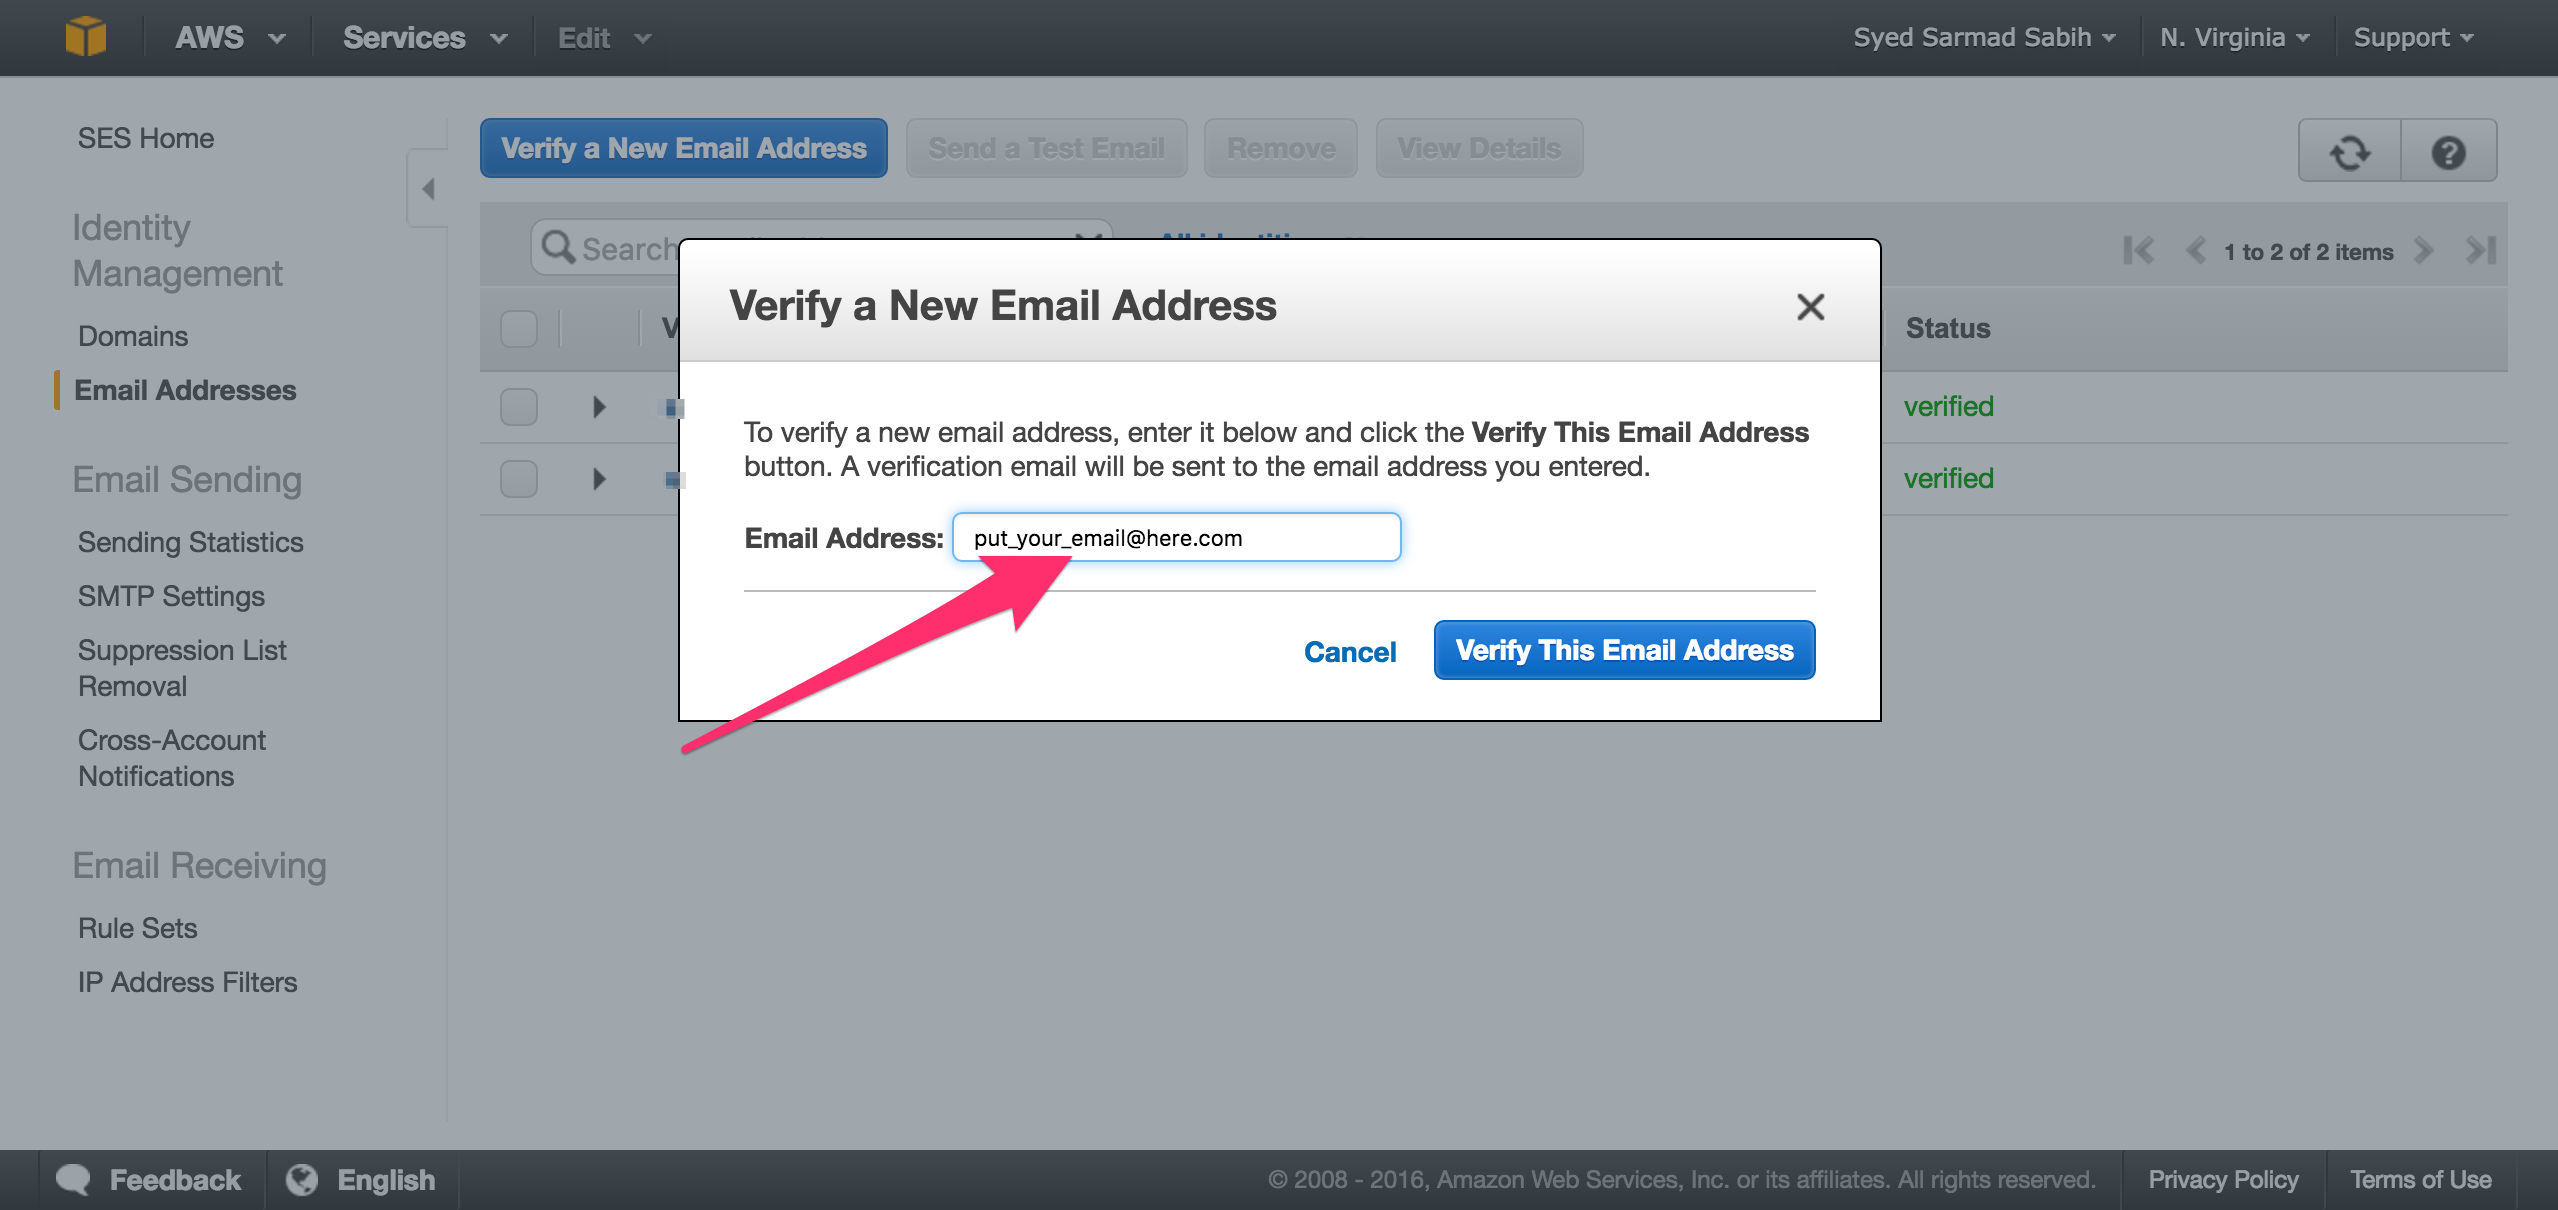 ses_verify_new_email_address